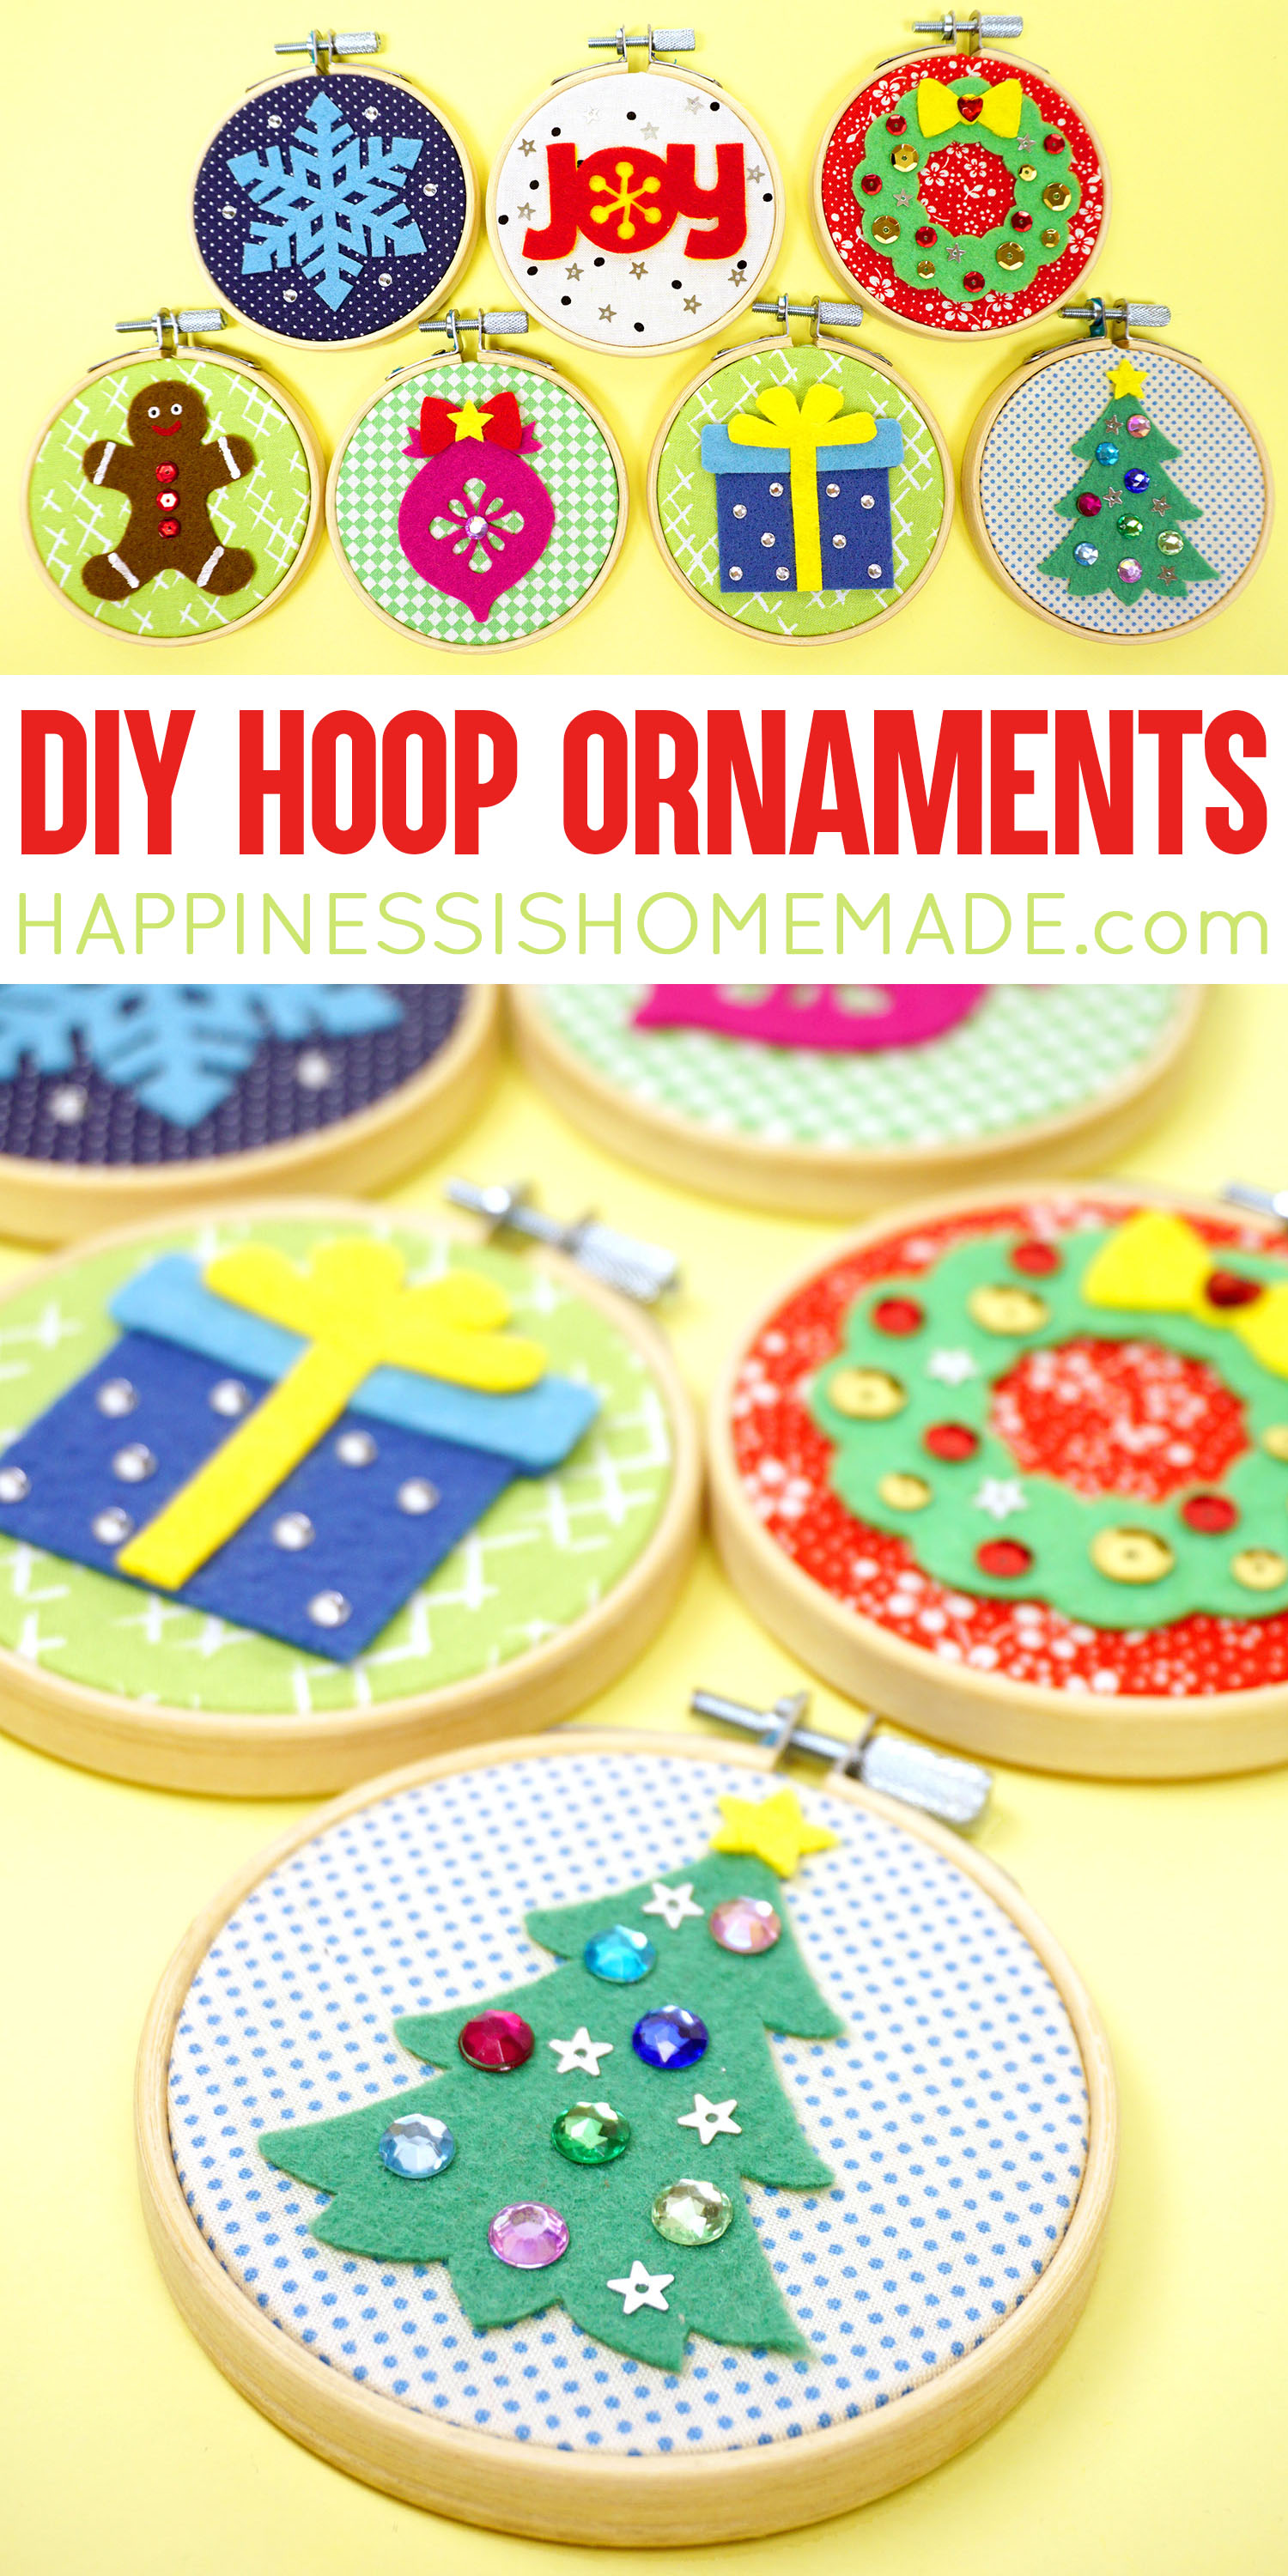 DIY Christmas Hoop Ornaments - Make these cute DIY Christmas Ornaments using mini embroidery hoops, felt shapes, and sparkly embellishments - a great easy group craft for Christmas parties and holiday get togethers! via @hihomemadeblog